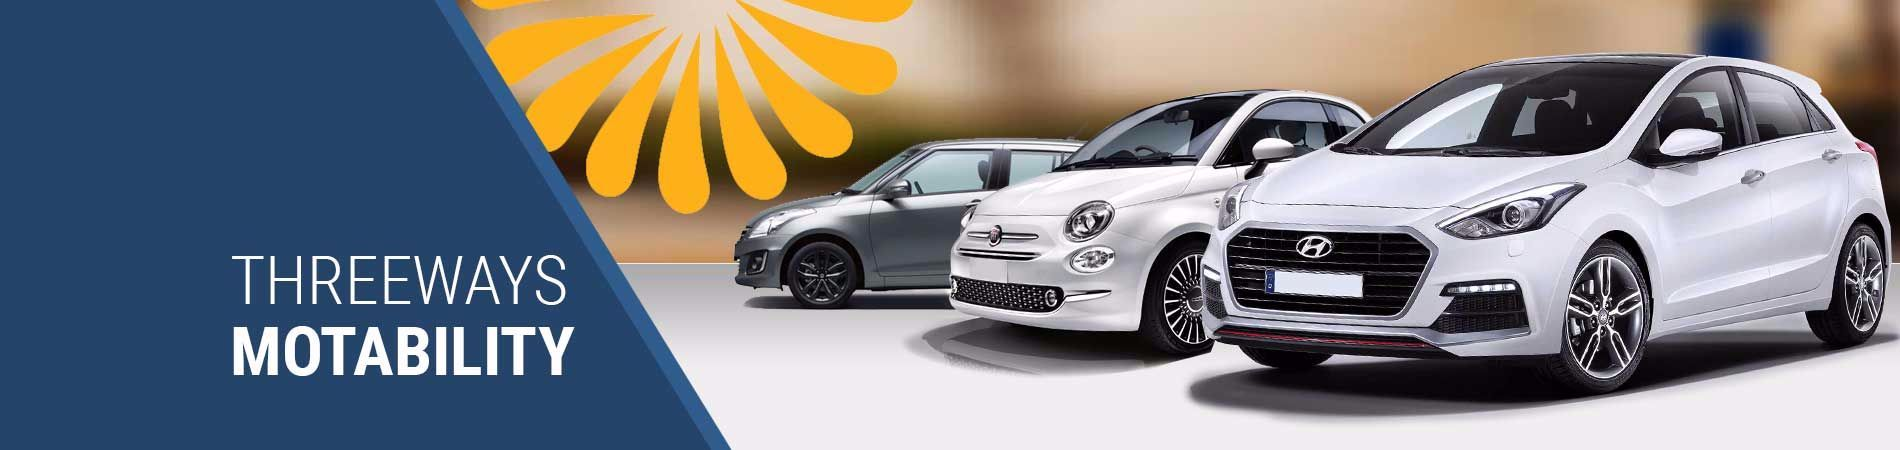 Motability at Threeways Garage Ltd